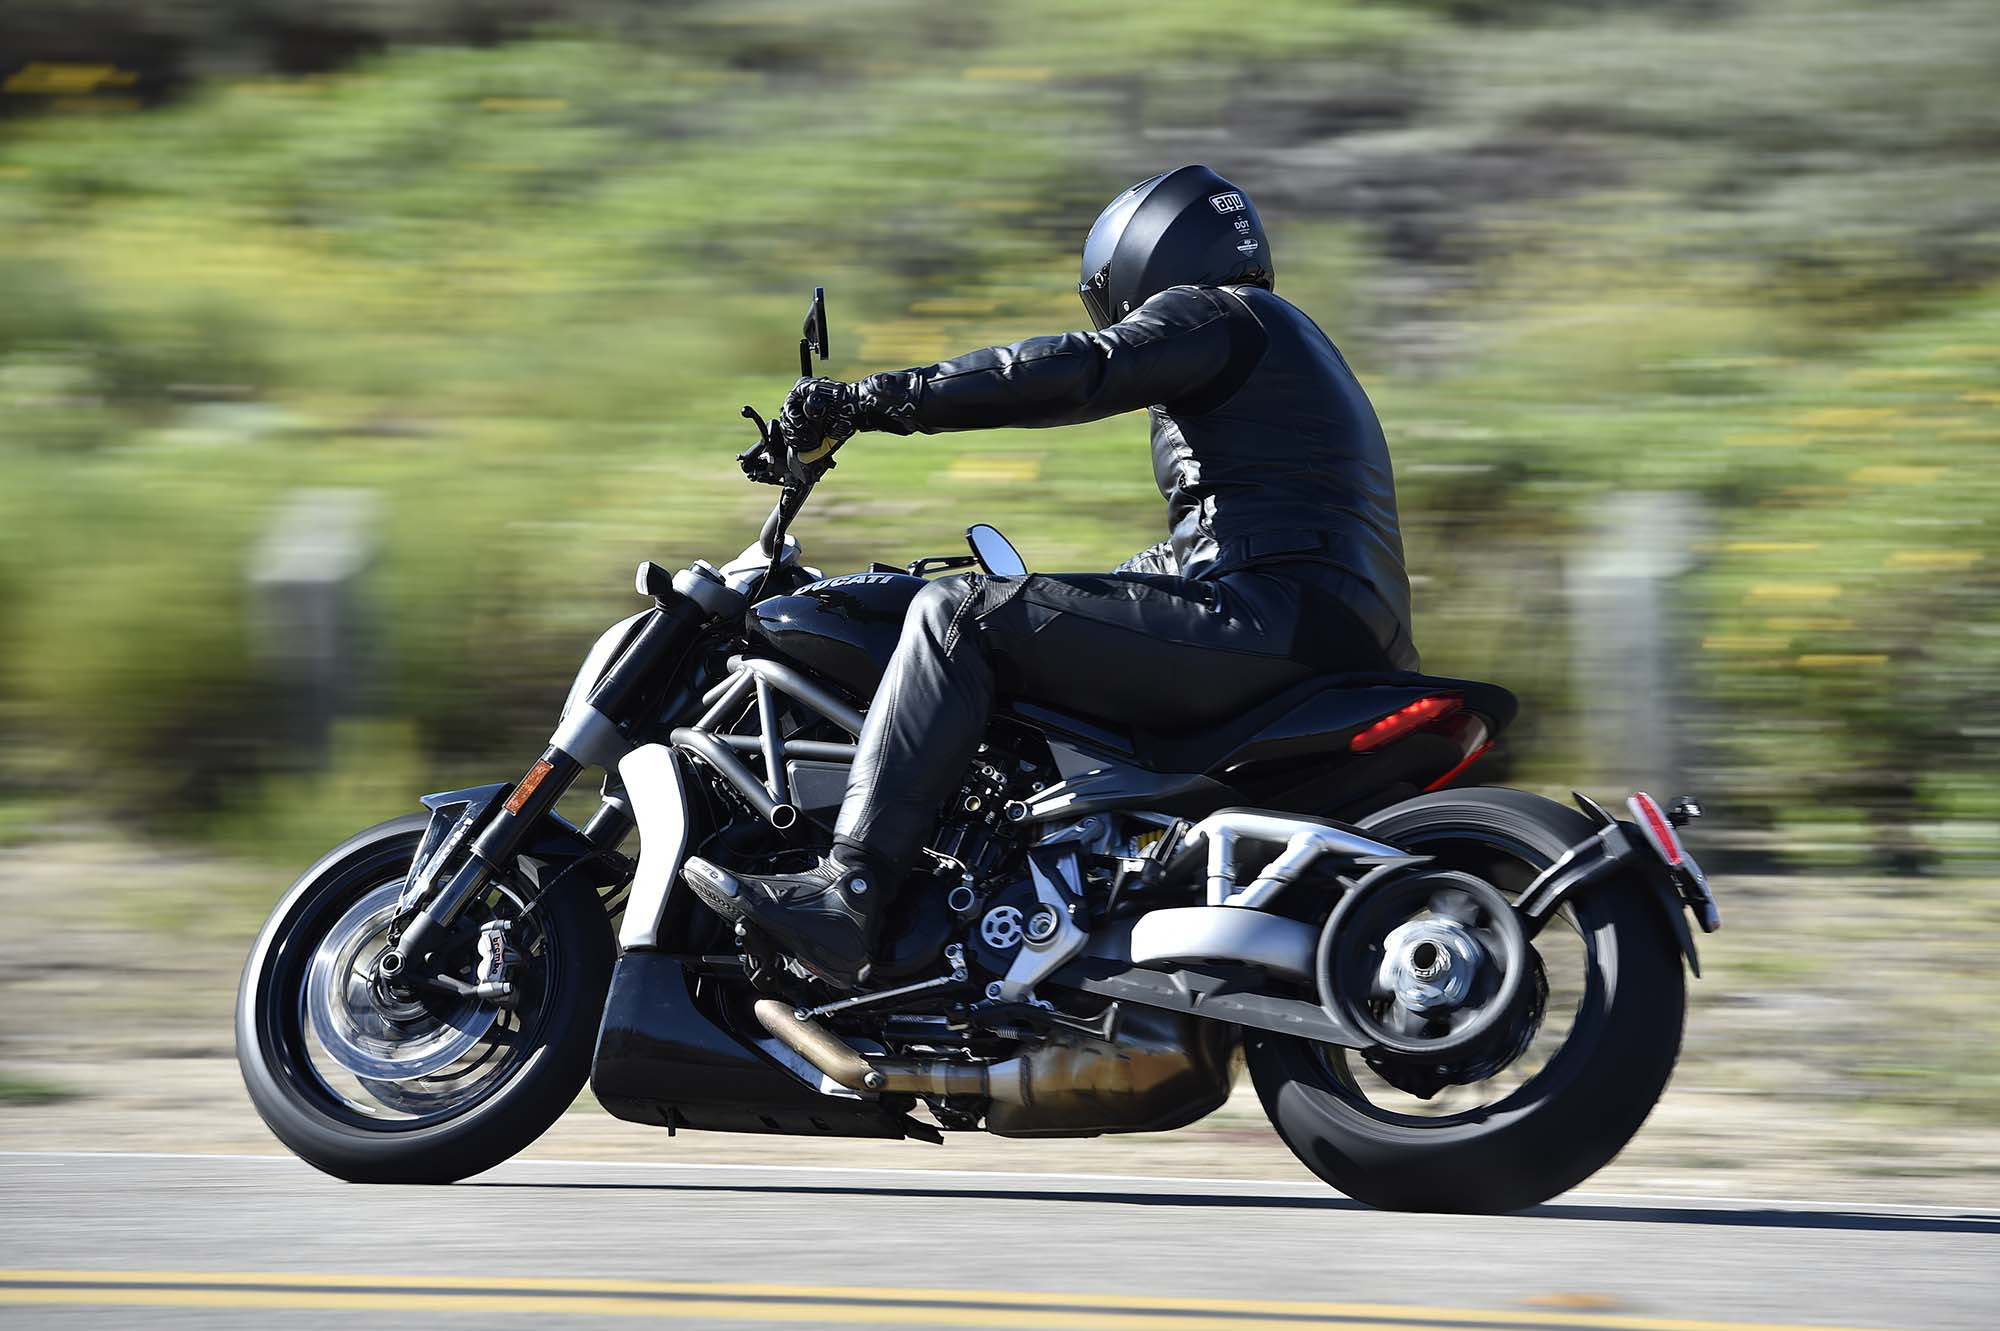 understanding the ducati xdiavel  a review bar and shield logo on tank images bar and shield logo template